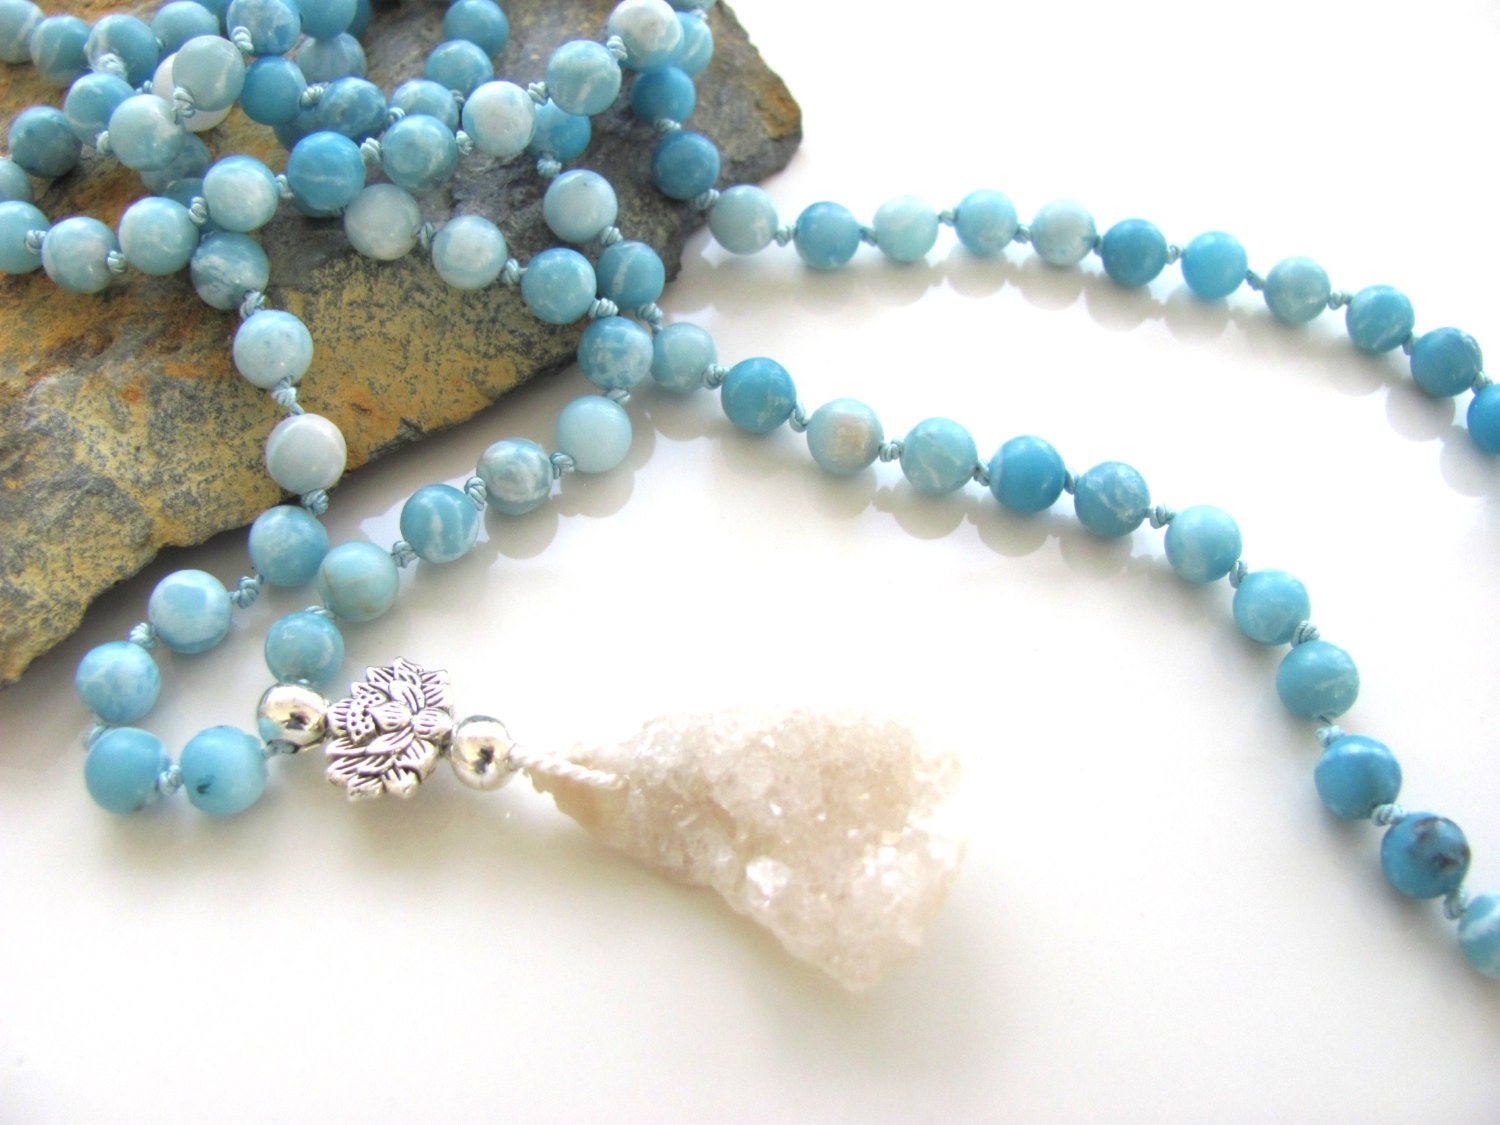 mantra mala knotted 108 bead mala aqua colored jade